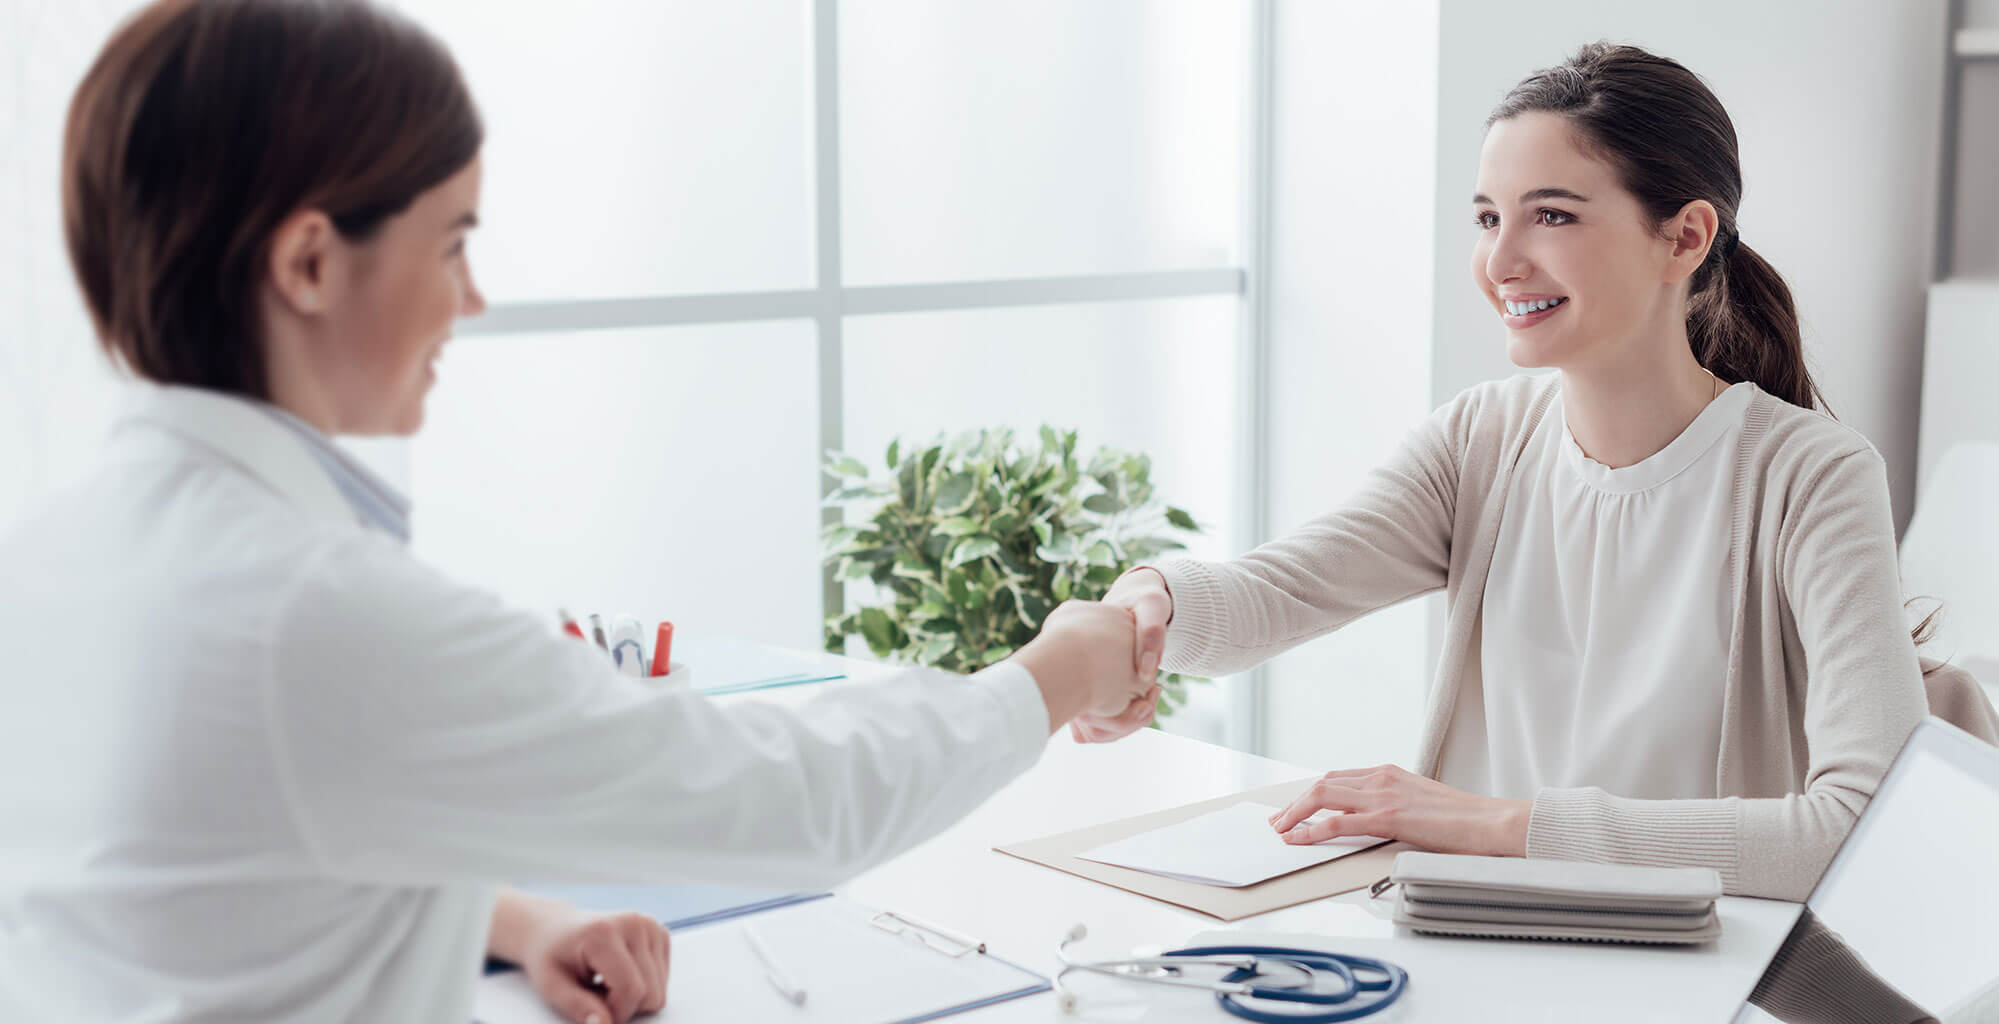 Family physician and patient shaking hands